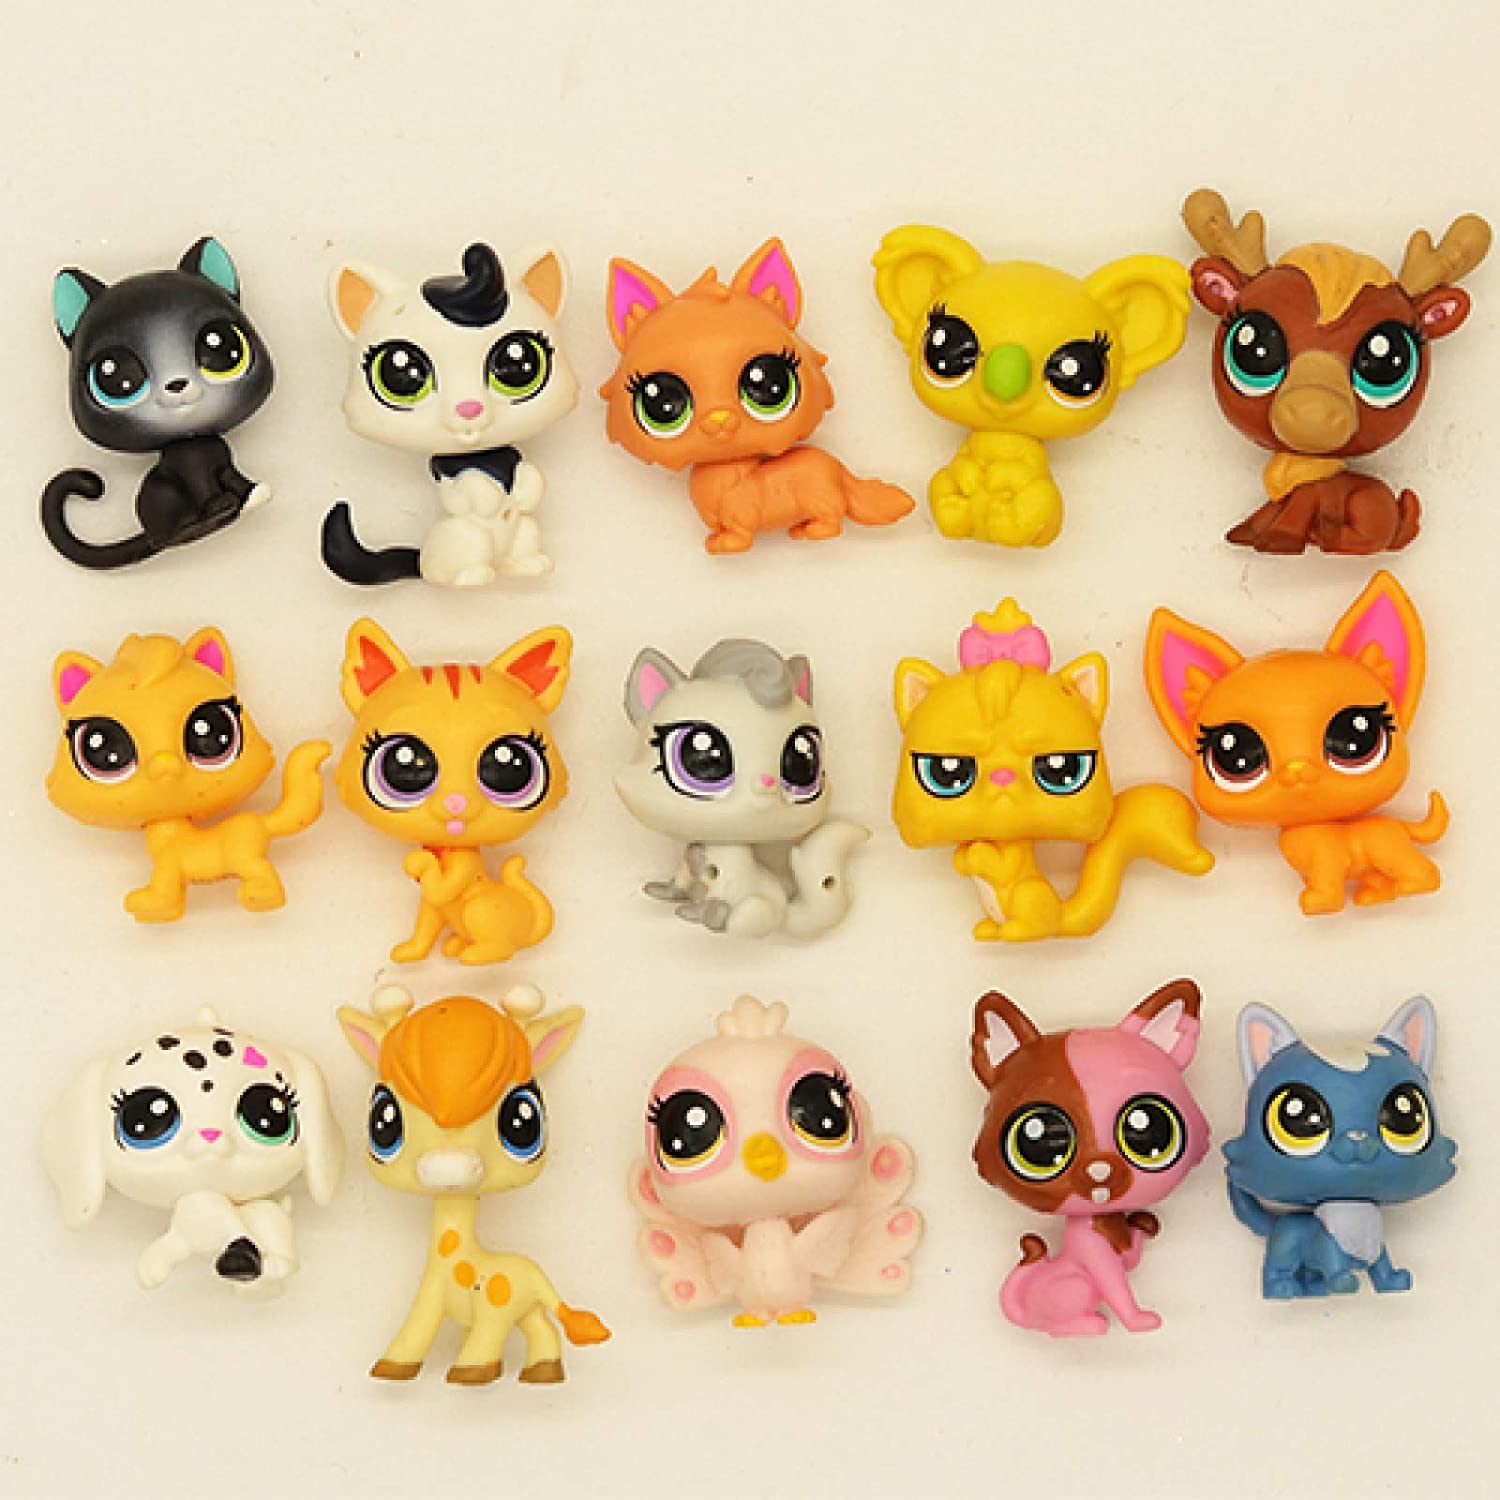 LPS CAT Lps Toy 10 15 Pcs 2-3 Fig Cat Puppy Clearance SALE! Limited time! Pet Toys Kansas City Mall cm Shop Old